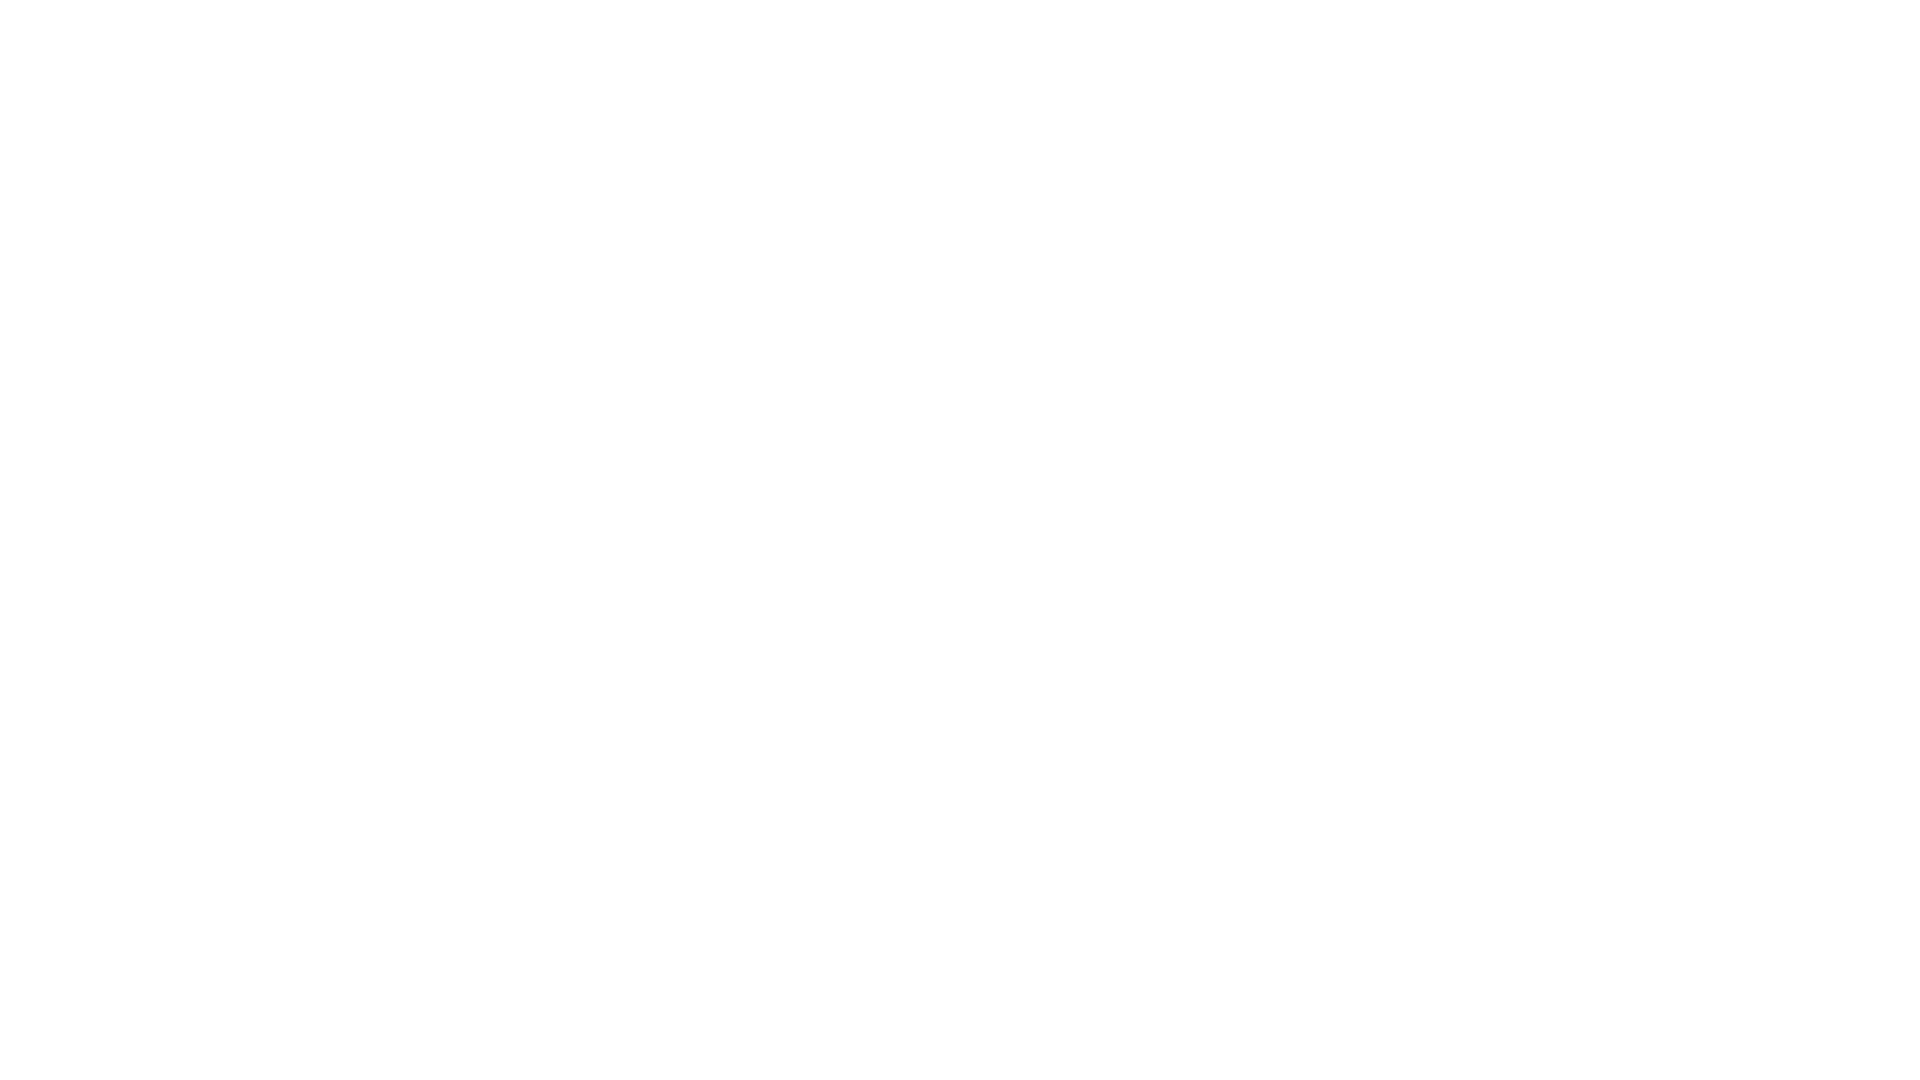 Star Wars: The Rise of Skywalker (Episode IX)